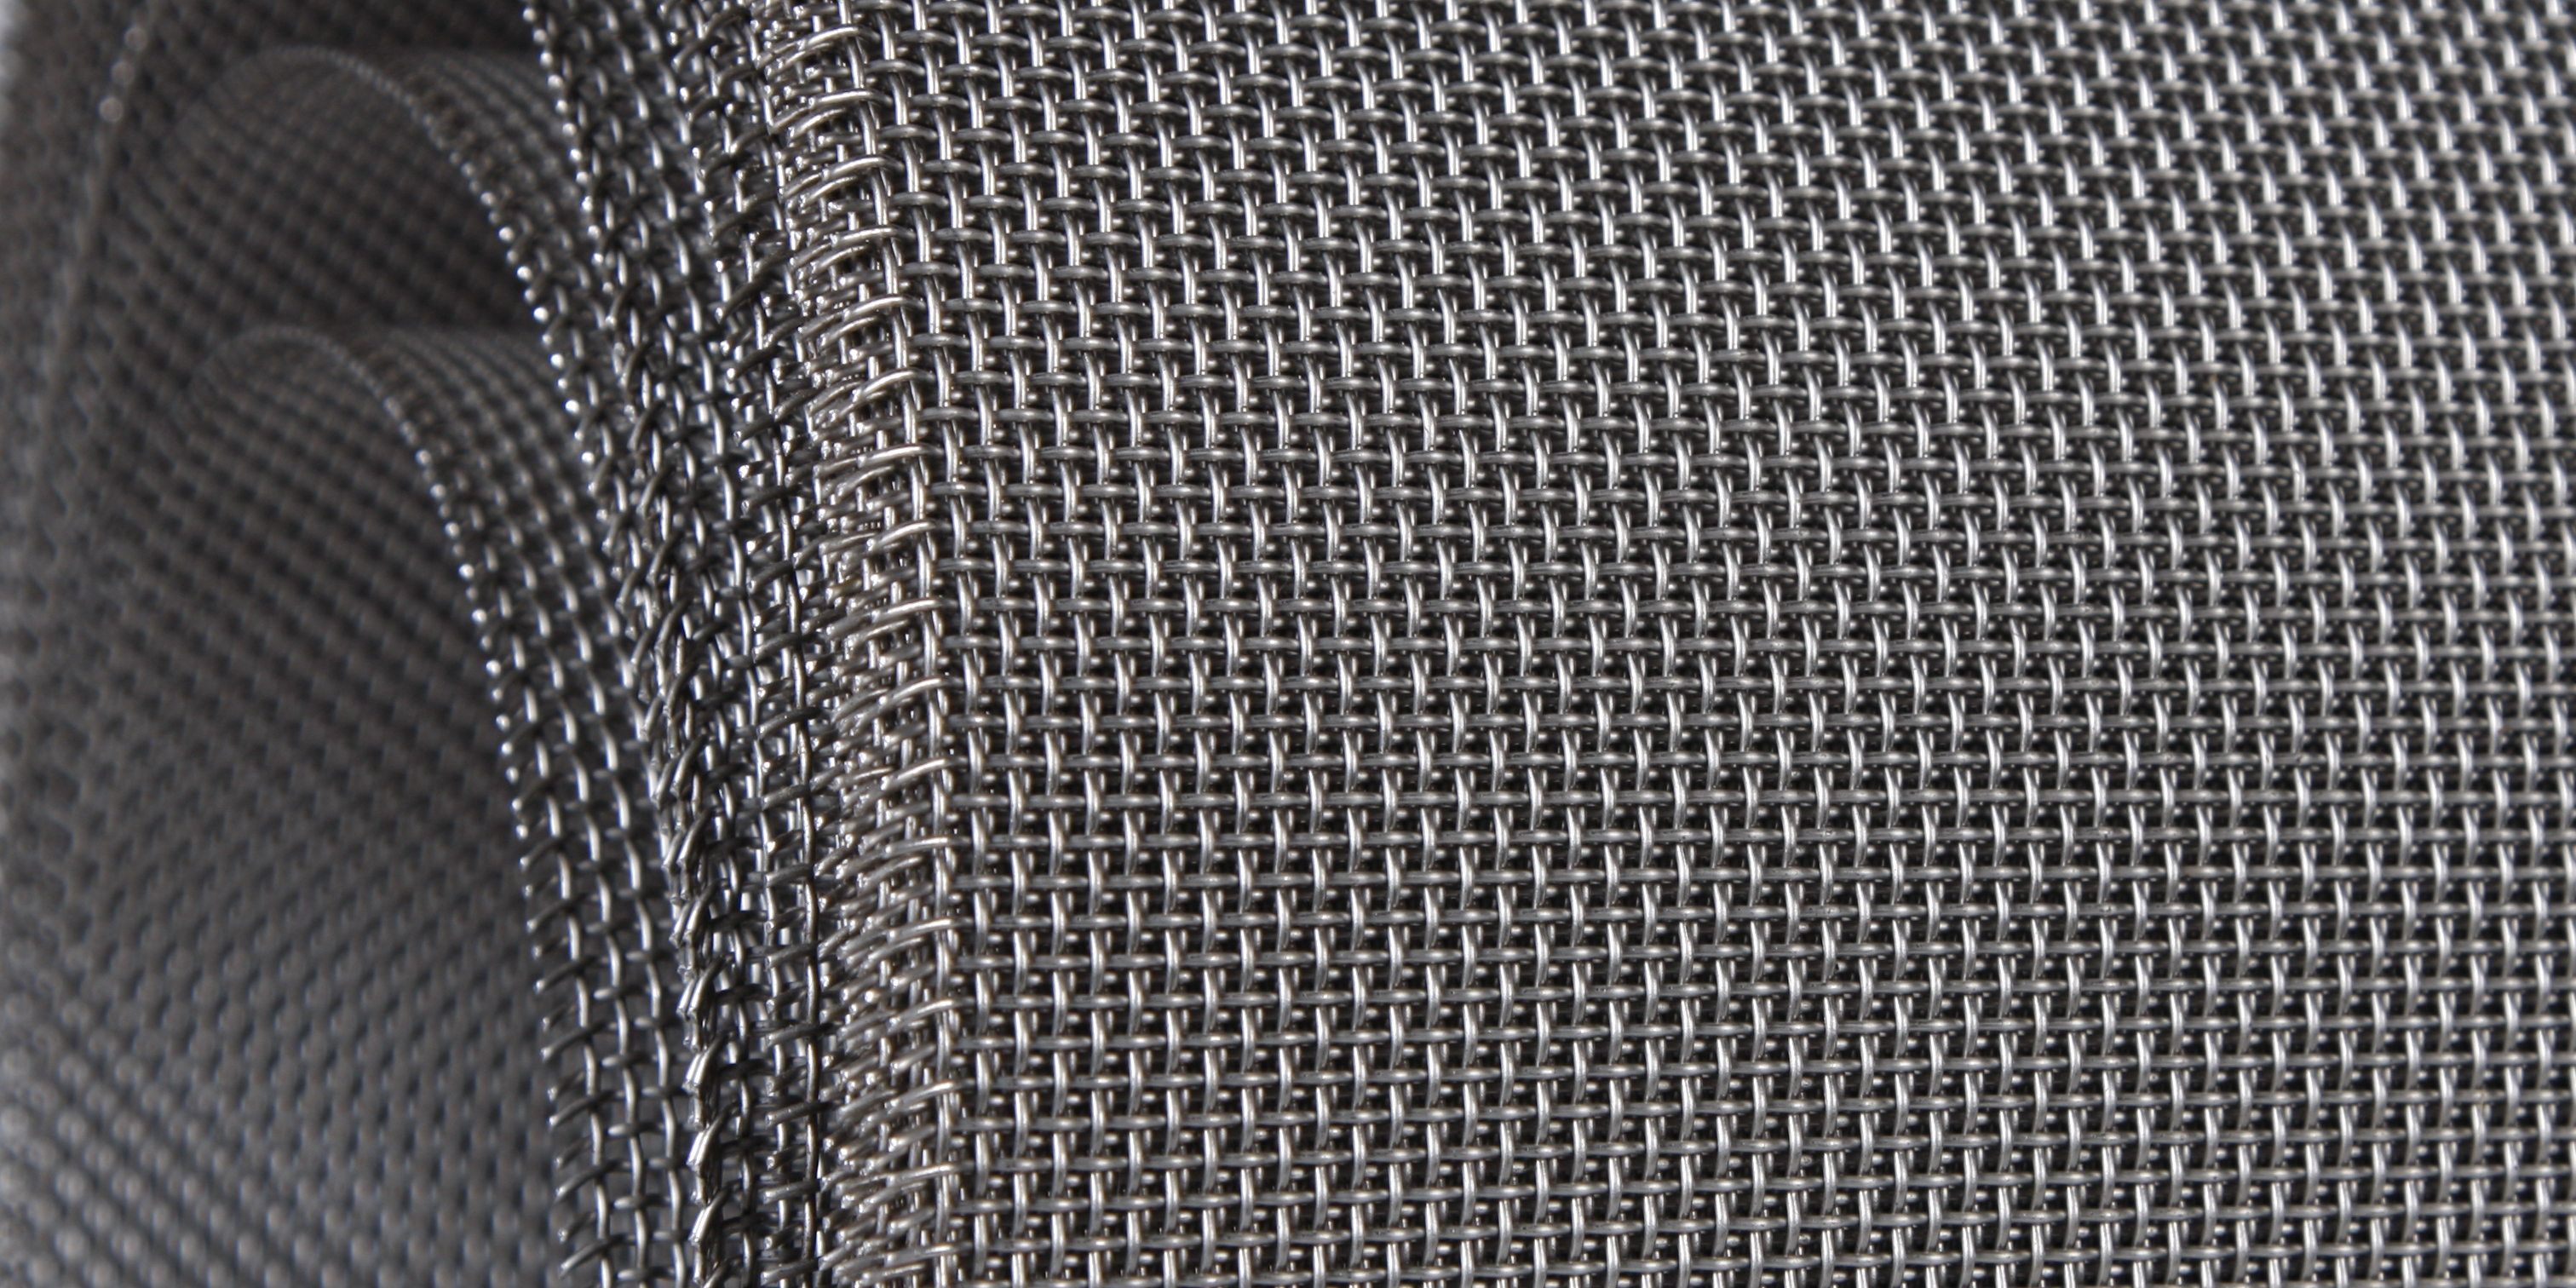 stainless-steel-bush-fire-mesh.jpg